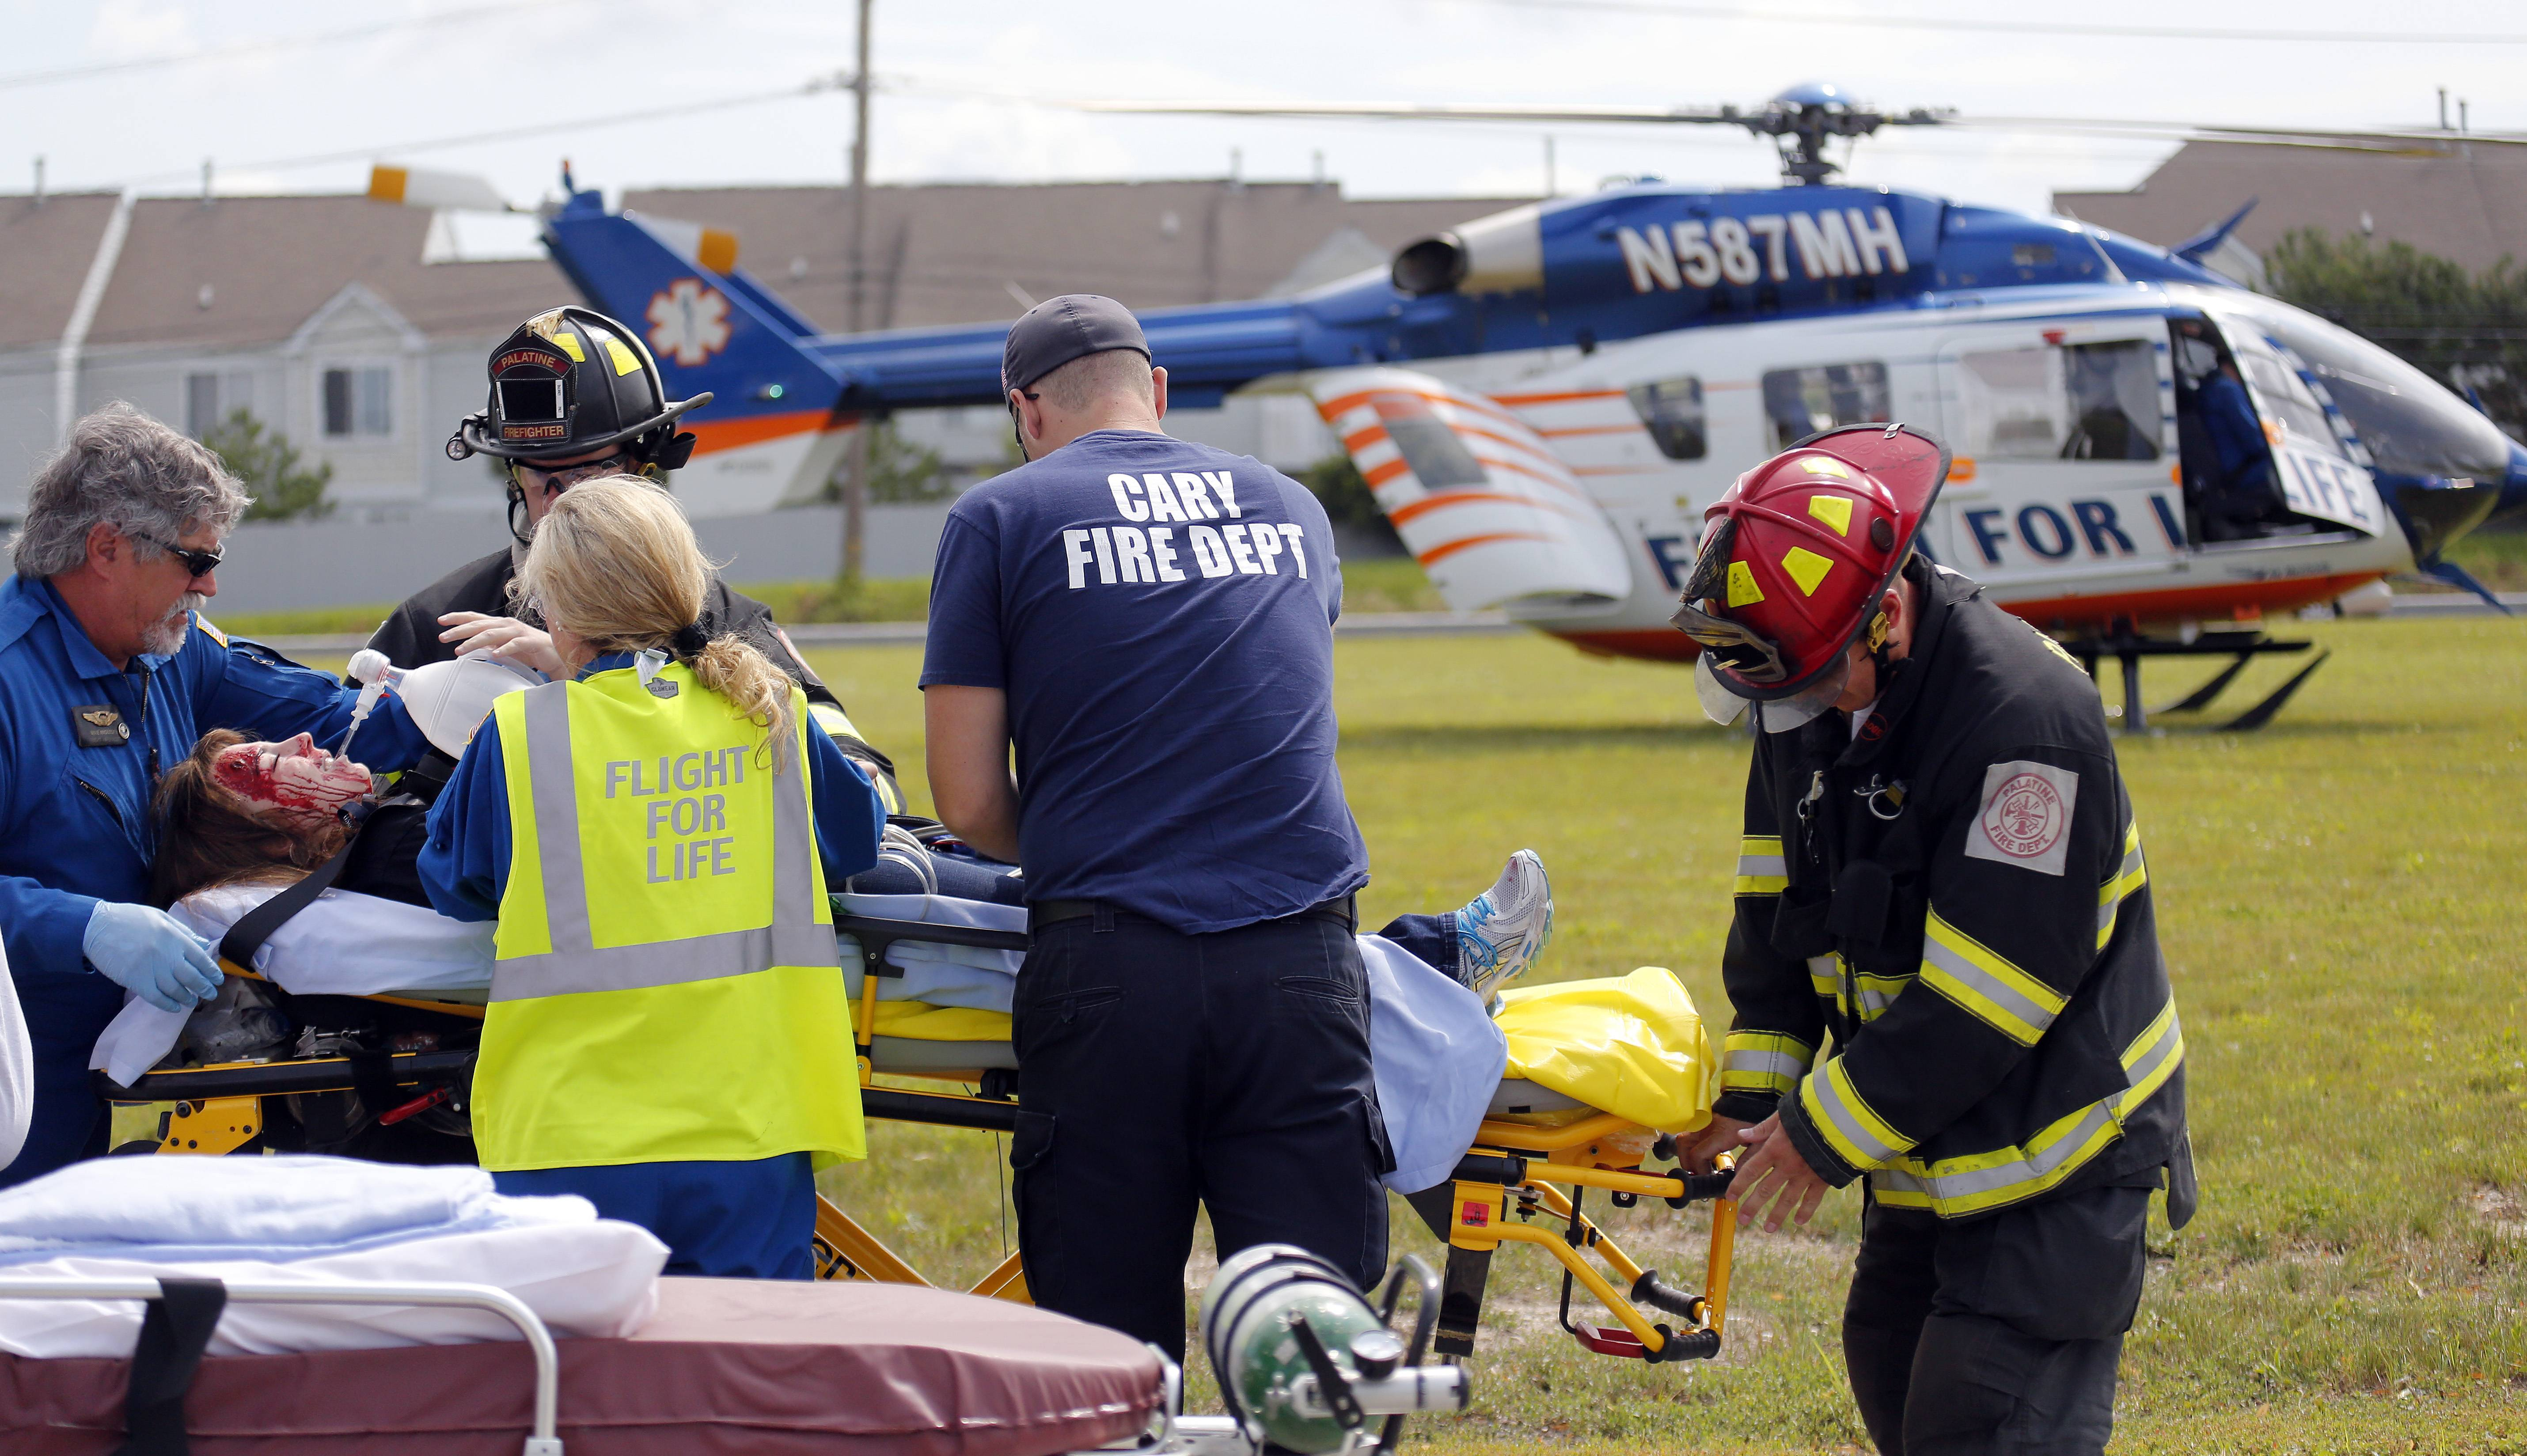 A patient is prepared for transport on a Flight for Life helicopter Thursday in front of Wal-Mart in Elgin during a training exercise conducted by the Elgin police and fire departments.